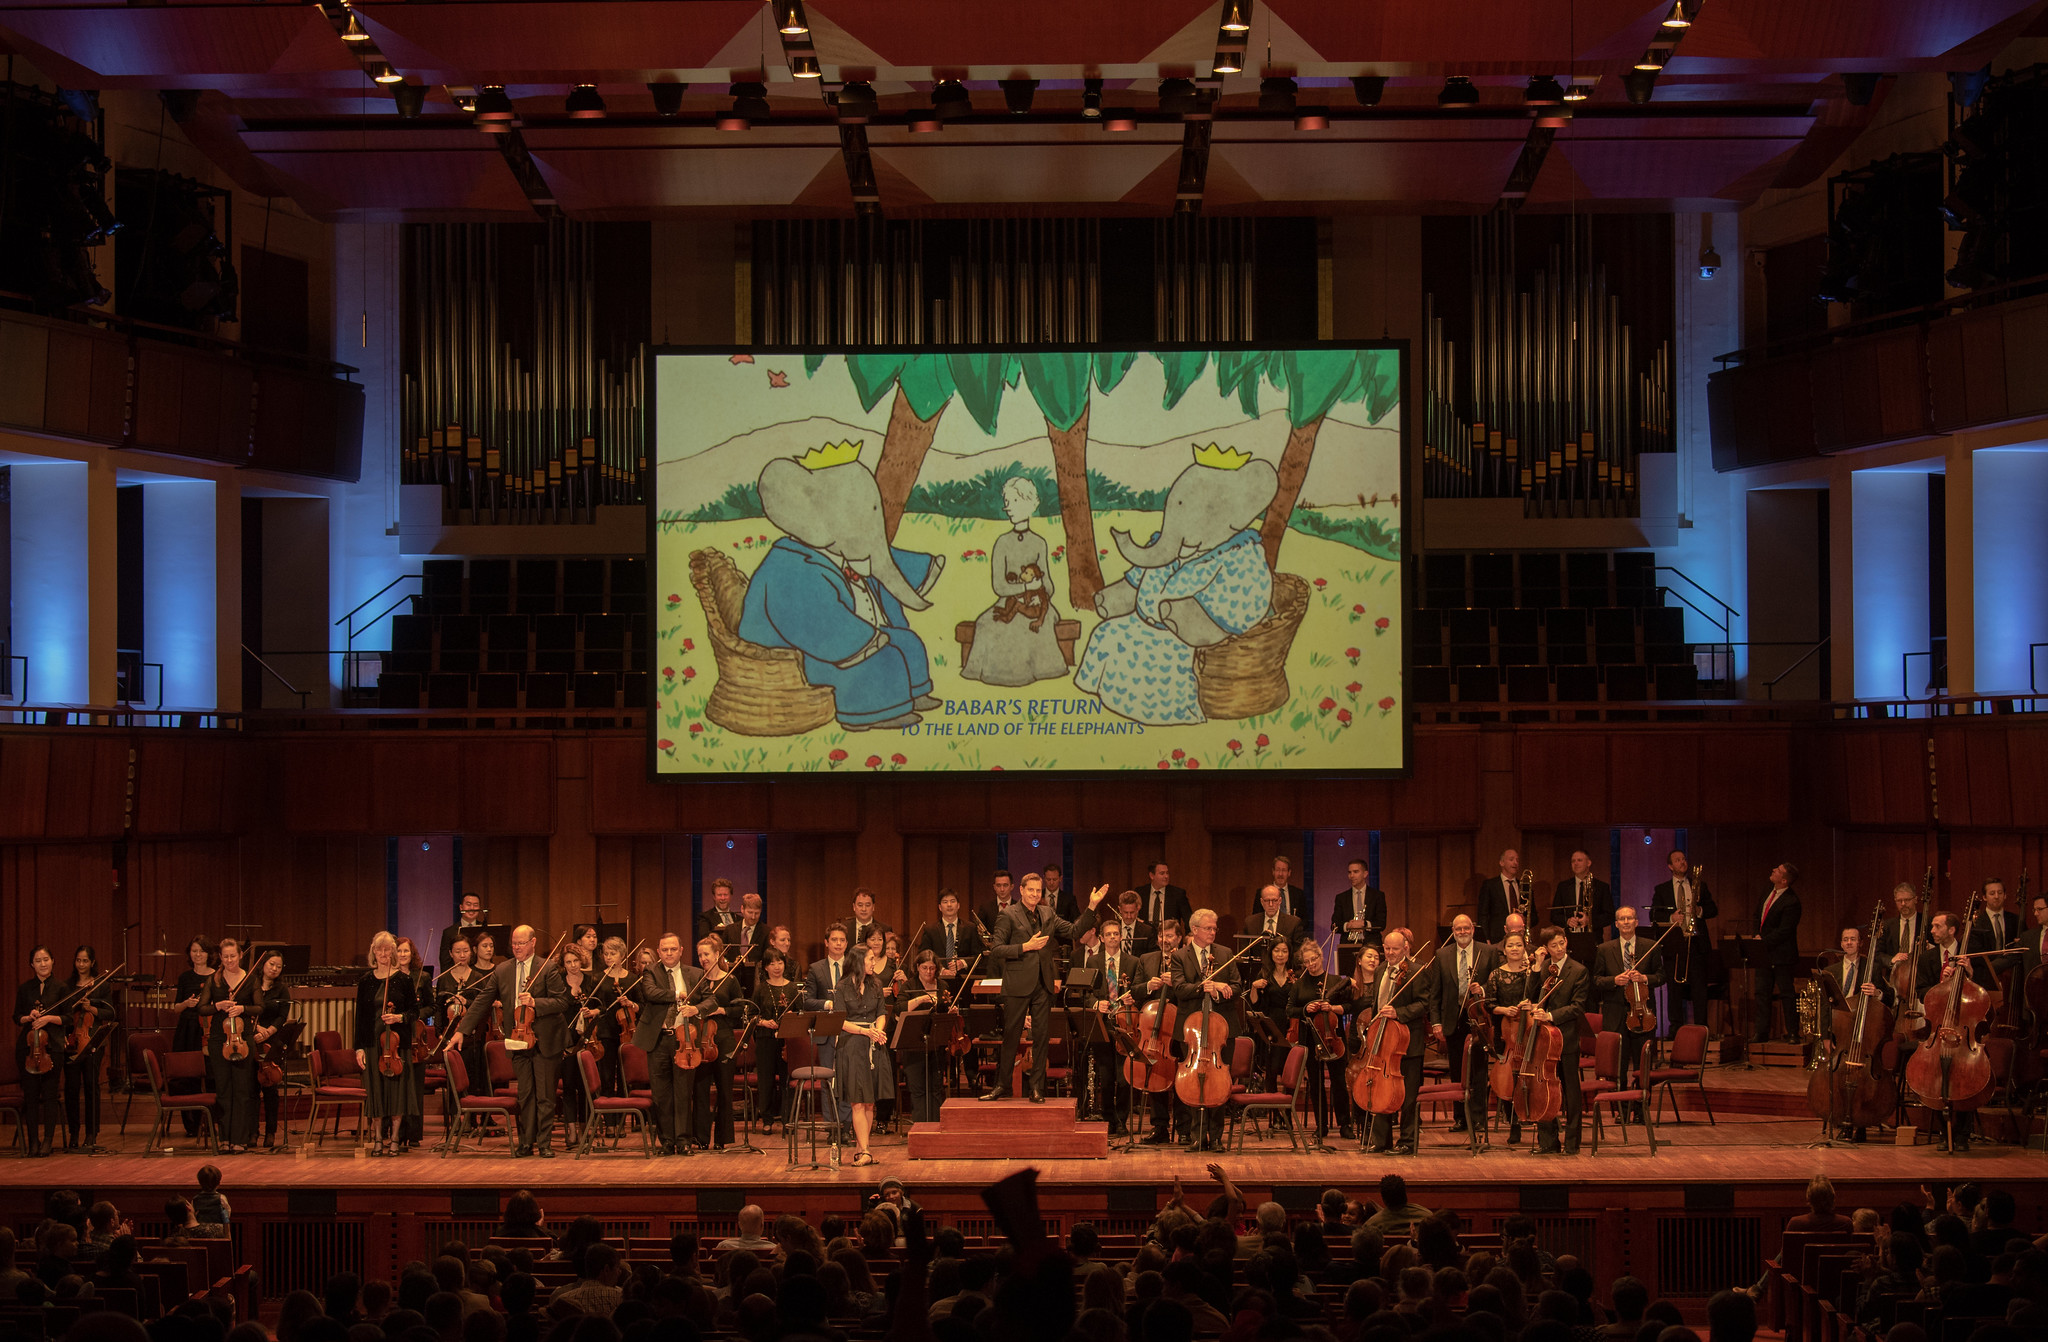 First U.S. performance, Raphael Mostel / Jean de Brunhoff   Babar's Return to the Land of the Elephants   for orchestra. Narrator Regina Aquino, conductor Steven Reineke with National Symphony Orchestra, John F Kennedy Center for the Arts, Washington, D.C., April 7, 2019  Photo: Erica Bruce, for Mostel.com (full size, hi-res photo available). Multimedia image: Jean de Brunhoff watercolor from the Kendra and Allan Daniel Collection, Used with permissions